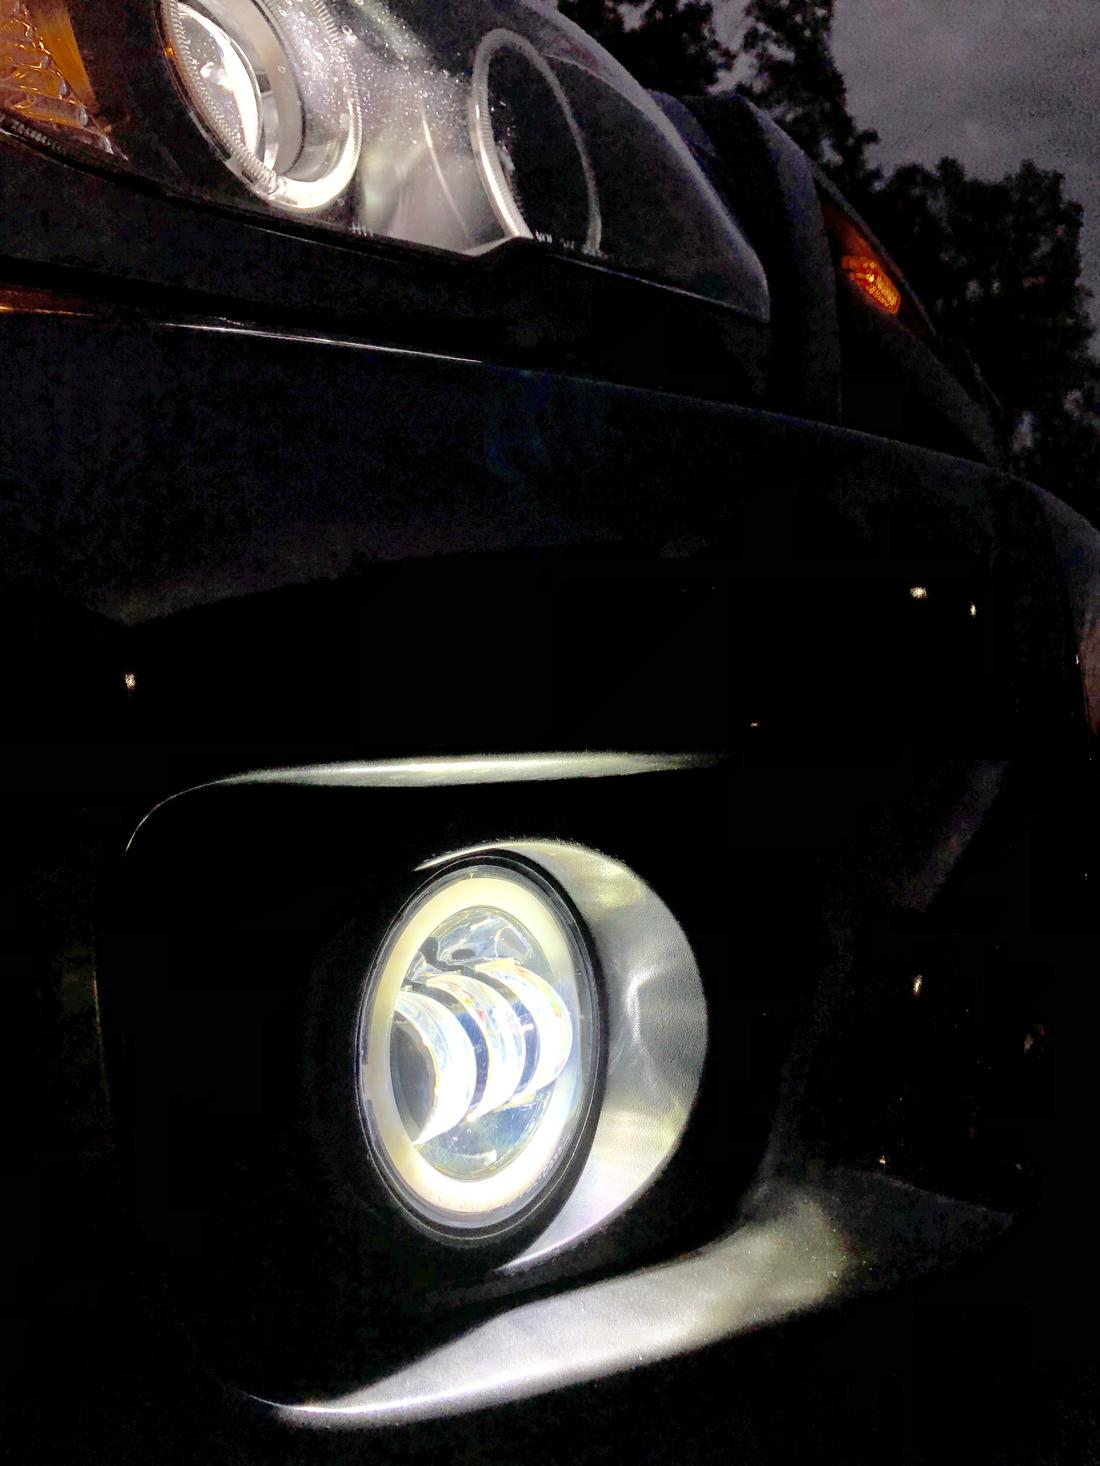 Fog Light Retrofit Finally Done Pics On Page 2 Toyota Switch Fj Cruiser Forum Attached Img 3923 1283 Kb